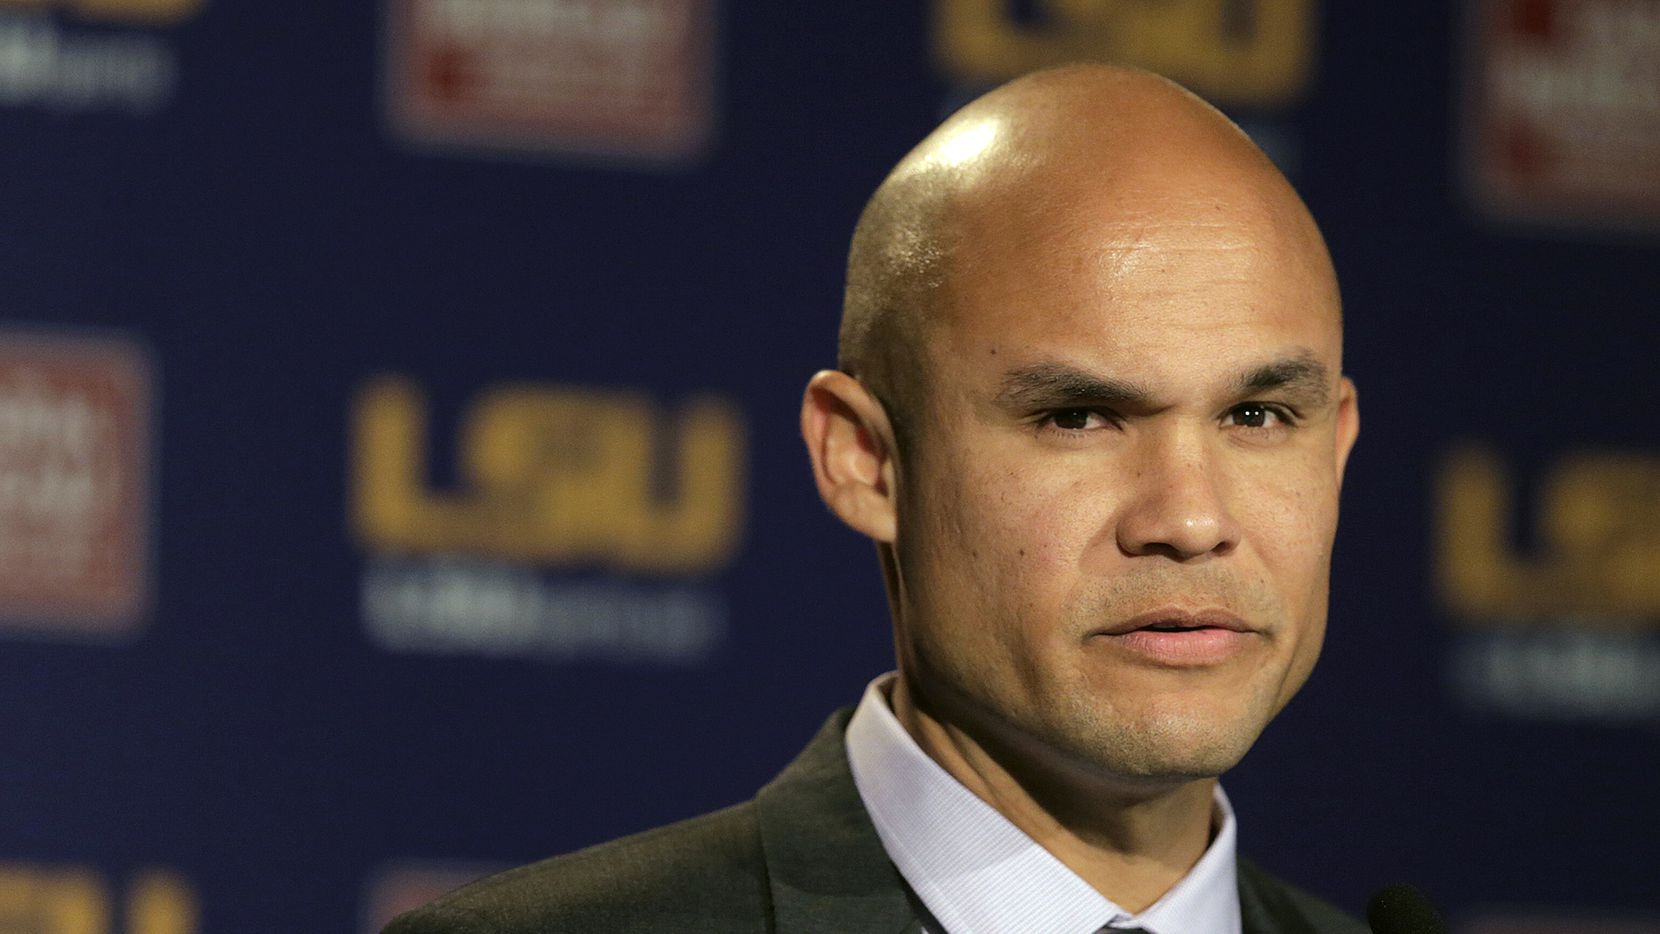 FILE - In this Jan. 5, 2016, file photo, LSU defensive coordinator Dave Aranda is shown during a press conference in Baton Rouge, La. Baylor hired LSU defensive coordinator Dave Aranda as its new head coach Thursday, Jan. 16, 2020, three days after the Tigers completed their undefeated national championship.